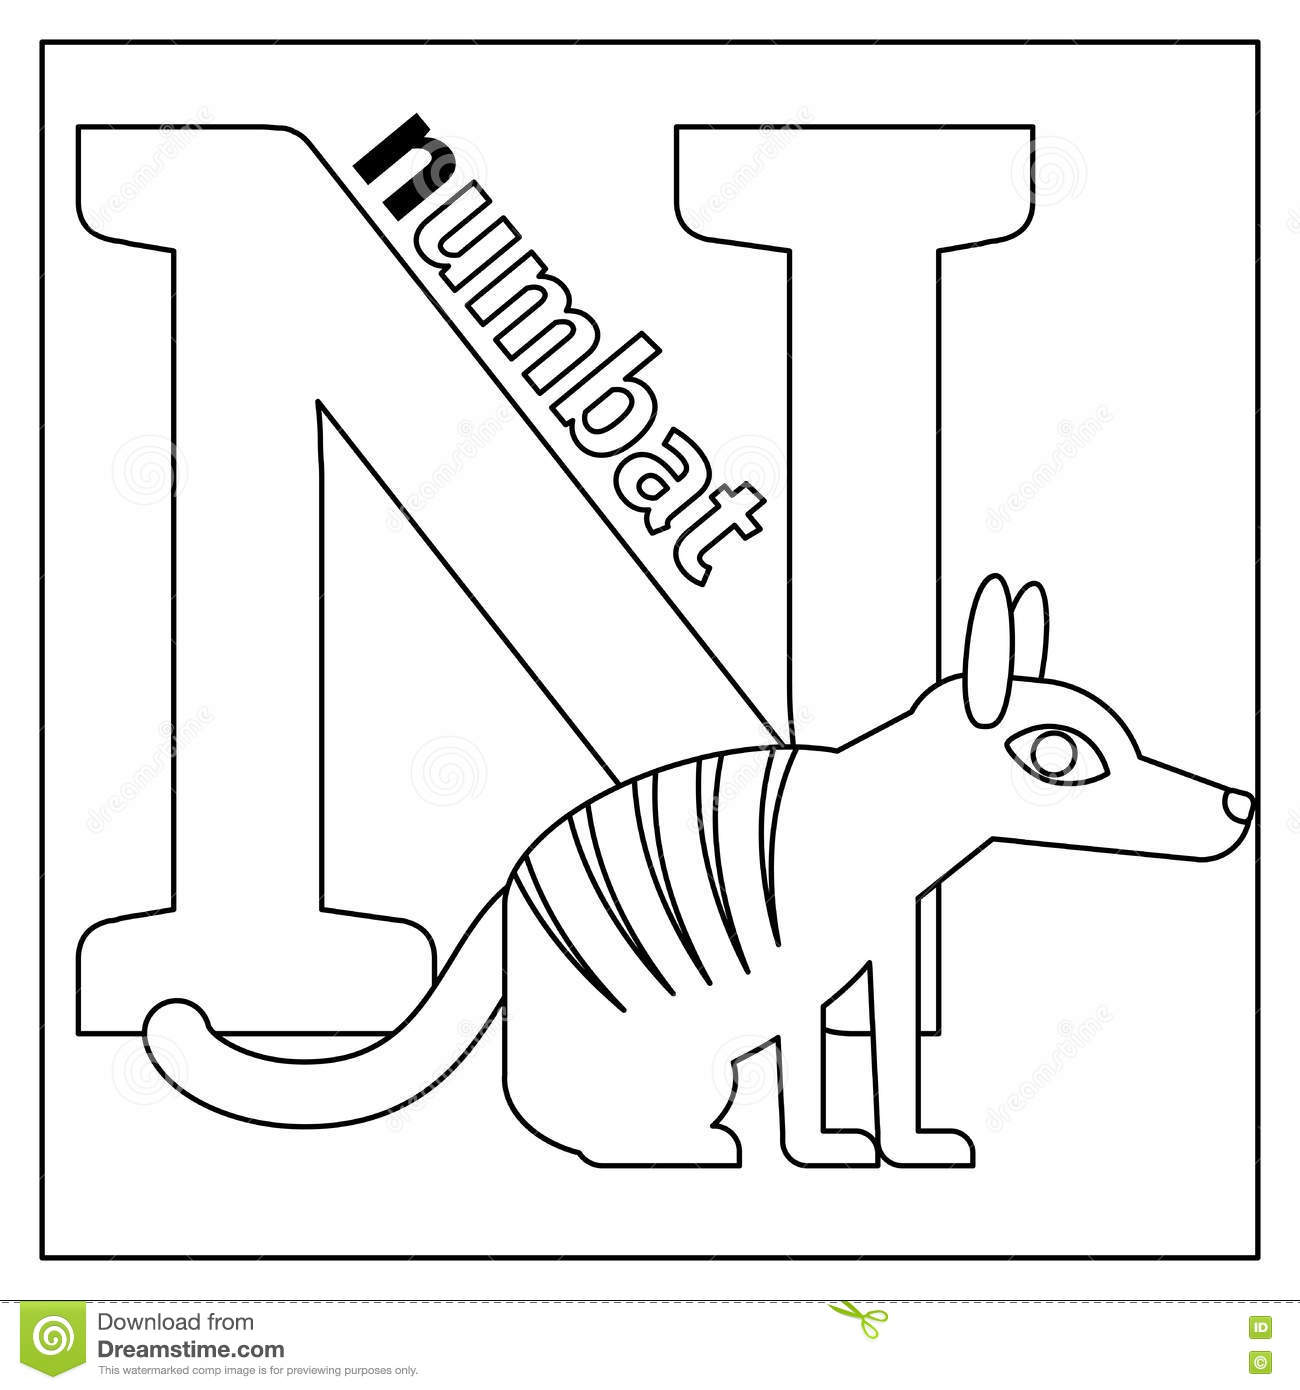 Free coloring pages preschool letter n - Letter N Is For Noah Coloring Page Free Printable Coloring Pages